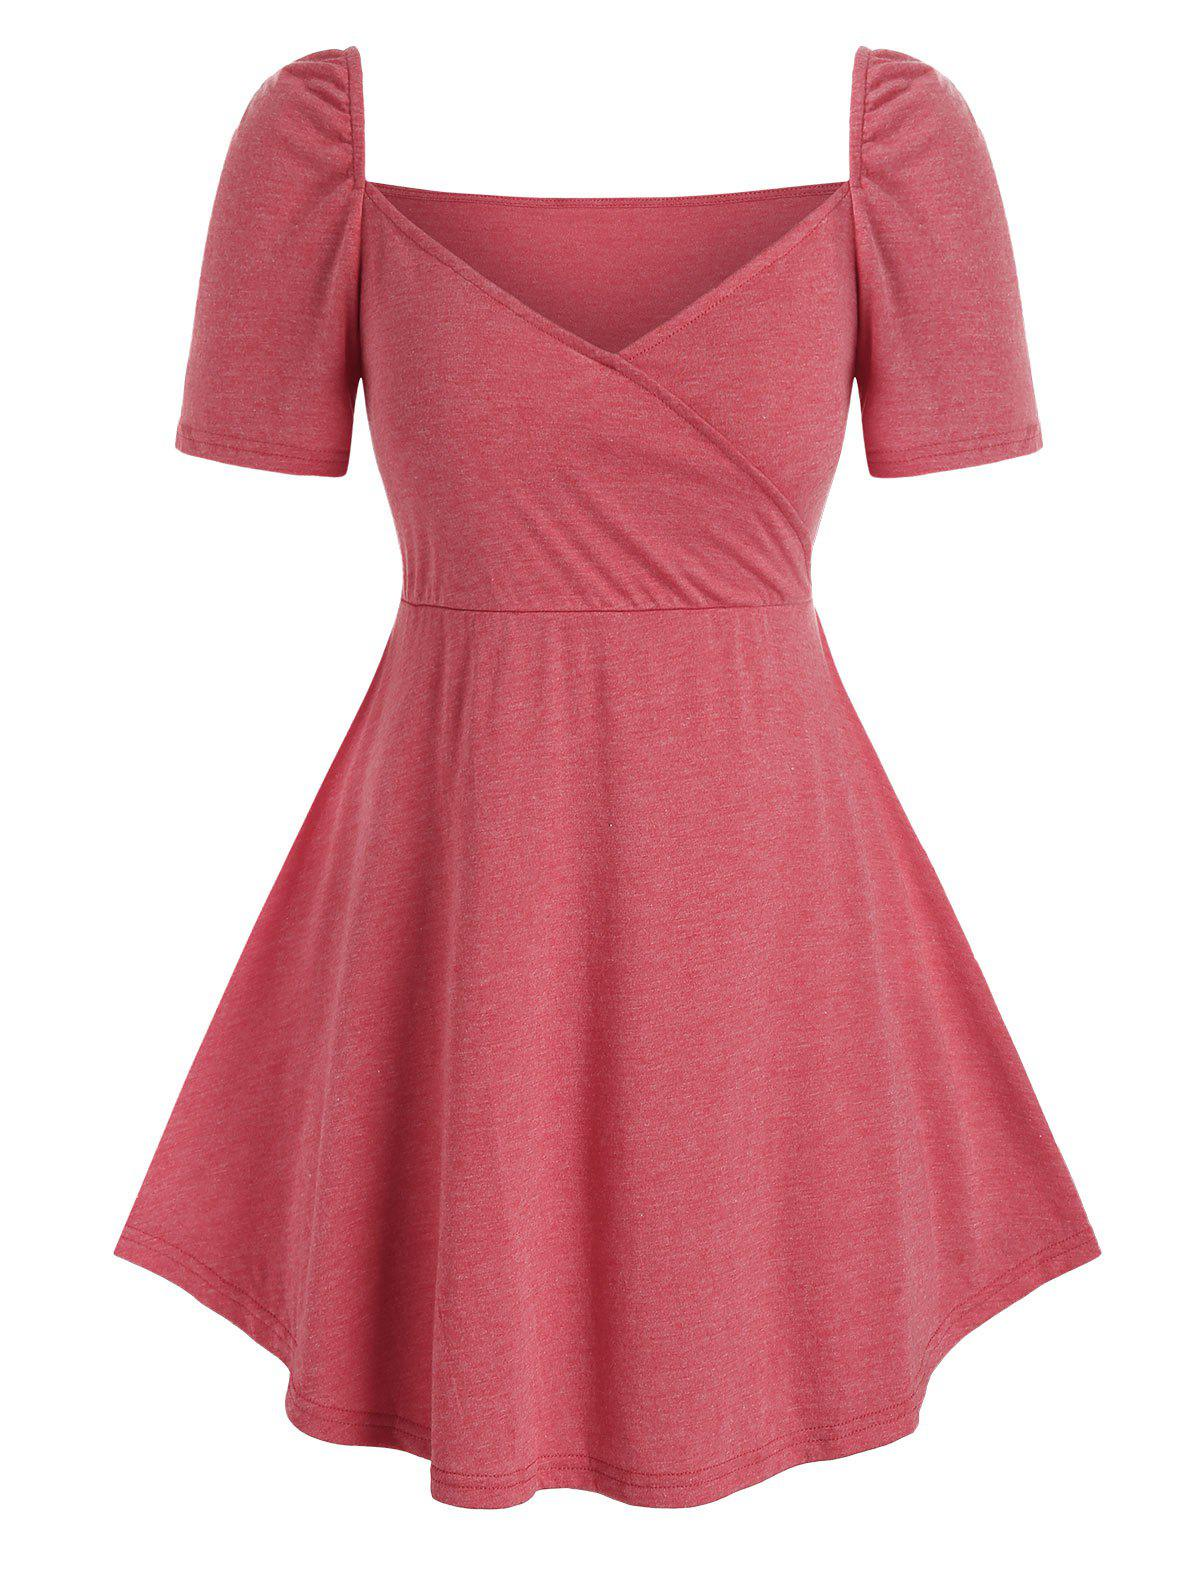 Sweetheart Neck Plus Size Skirted T Shirt - LIGHT CORAL 2X